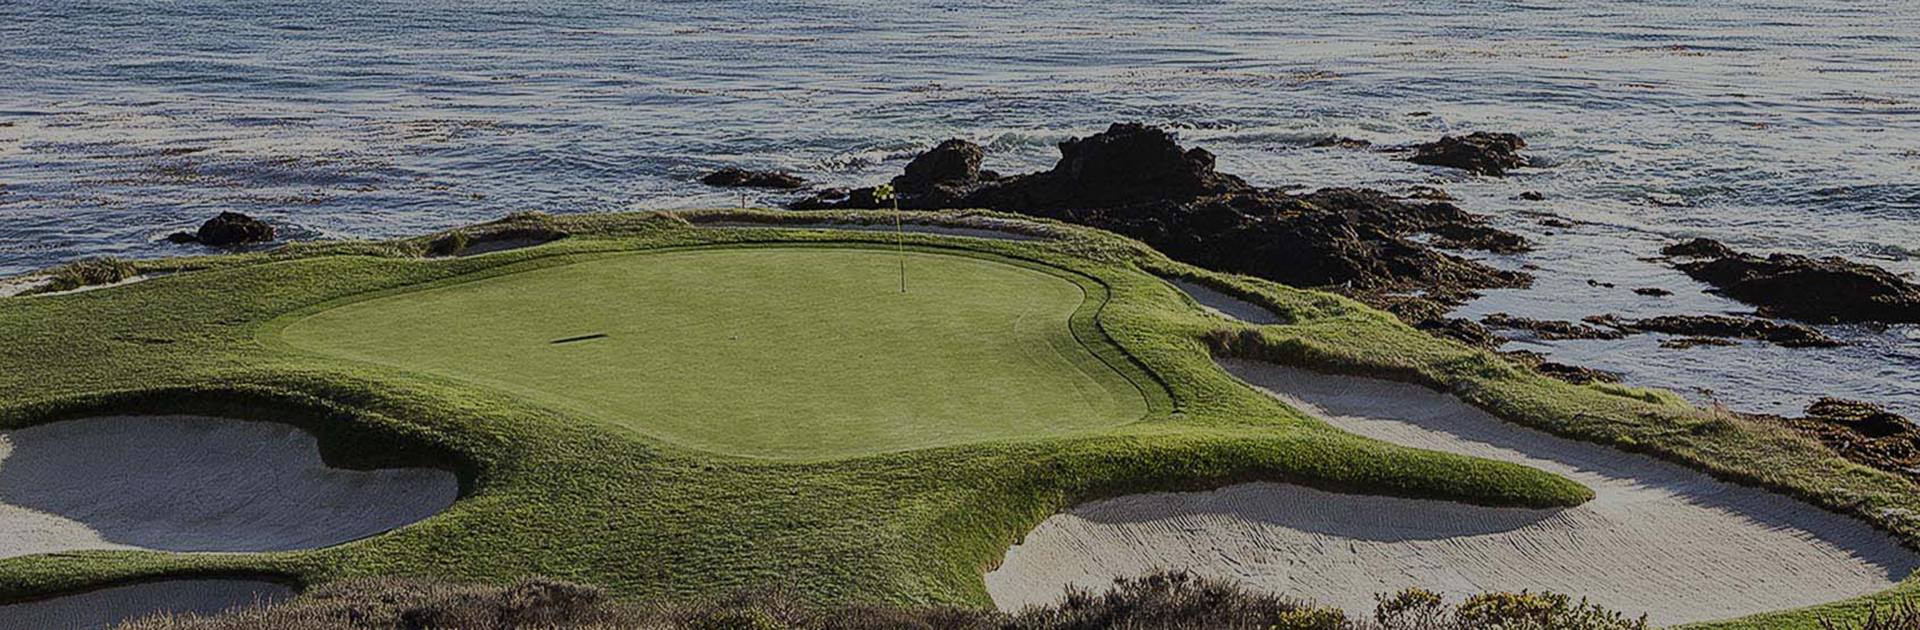 wide photo of golf green and ocean